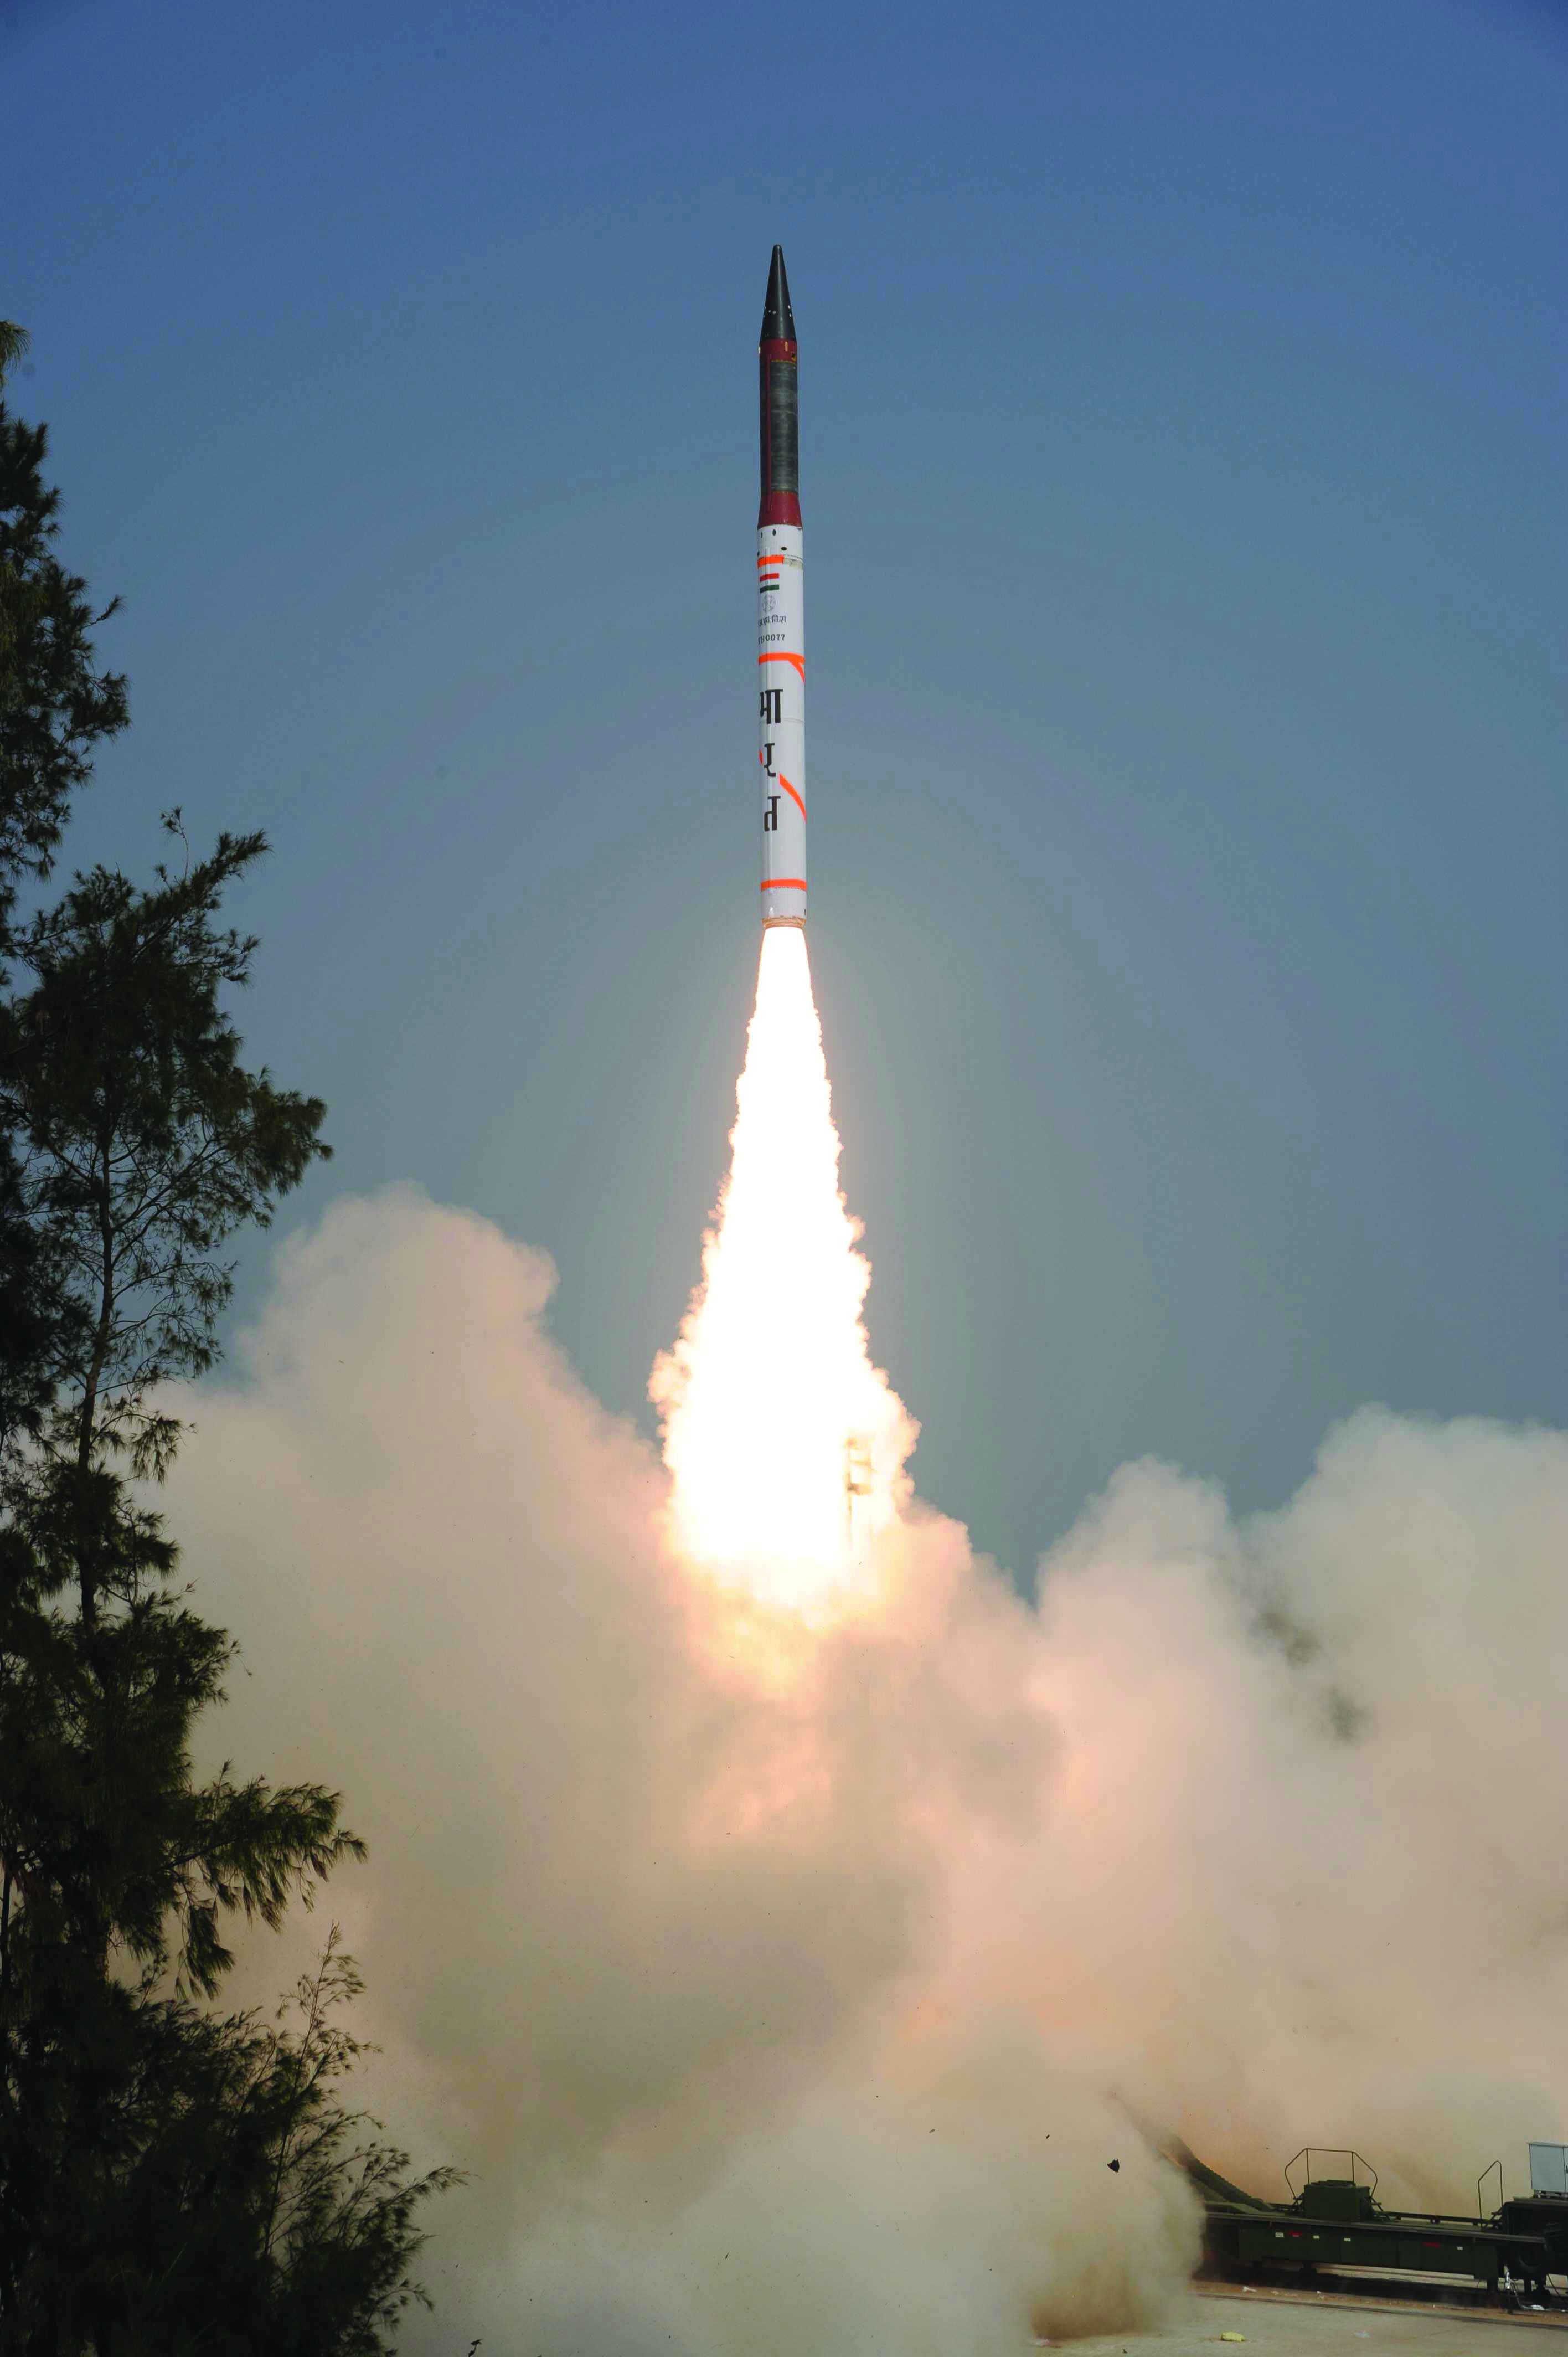 India successfully test-fired its nuclear-capable Agni-IV ballistic missile with a strike range of over 4000 km from Wheeler Island off Odisha coast on Jan.20, 2014.